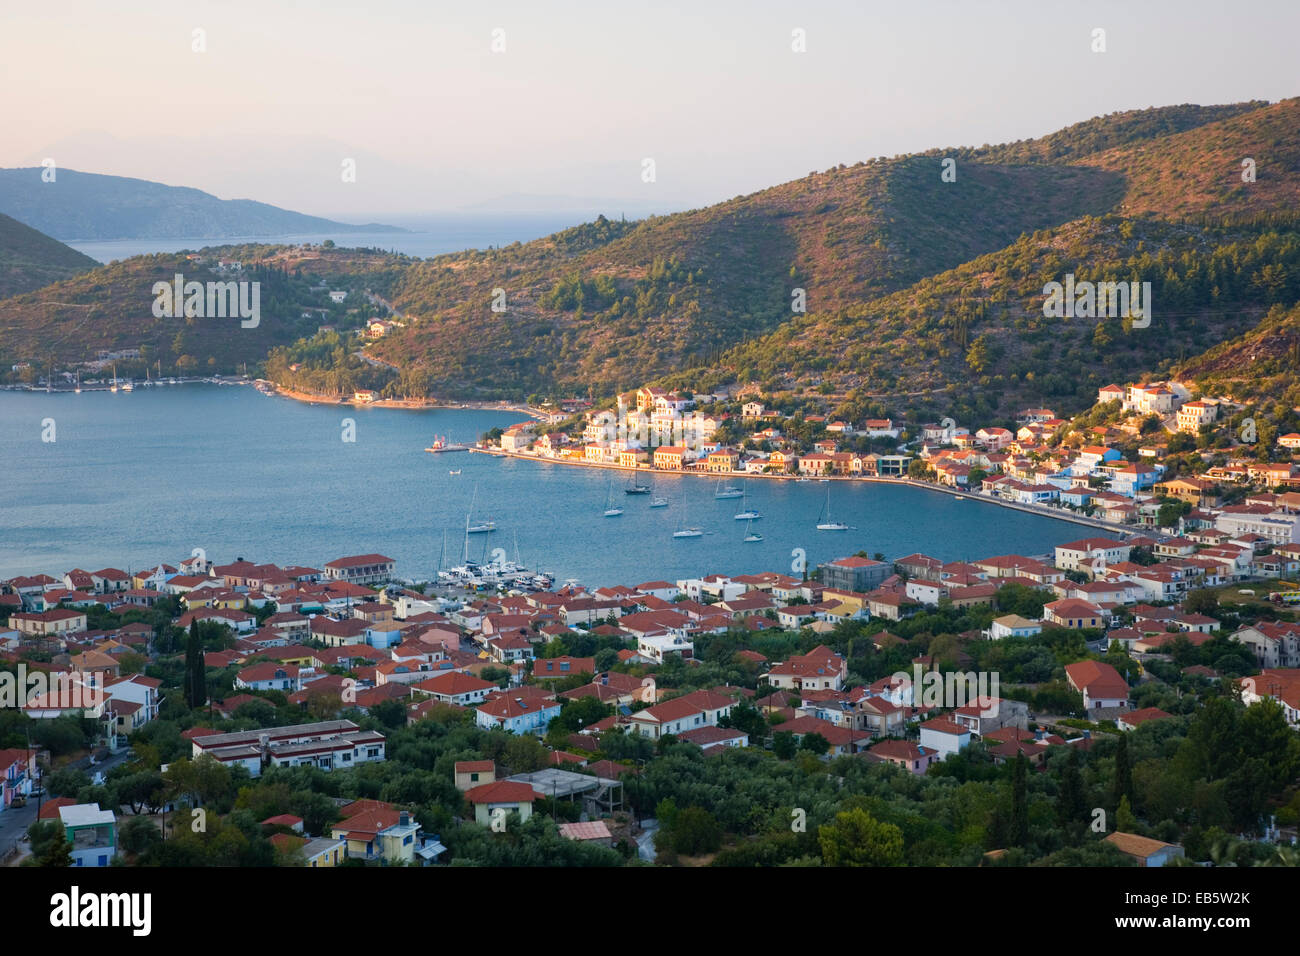 Vathy, Ithaca, Ionian Islands, Greece. View from hillside over the picturesque town and harbour, sunset. - Stock Image